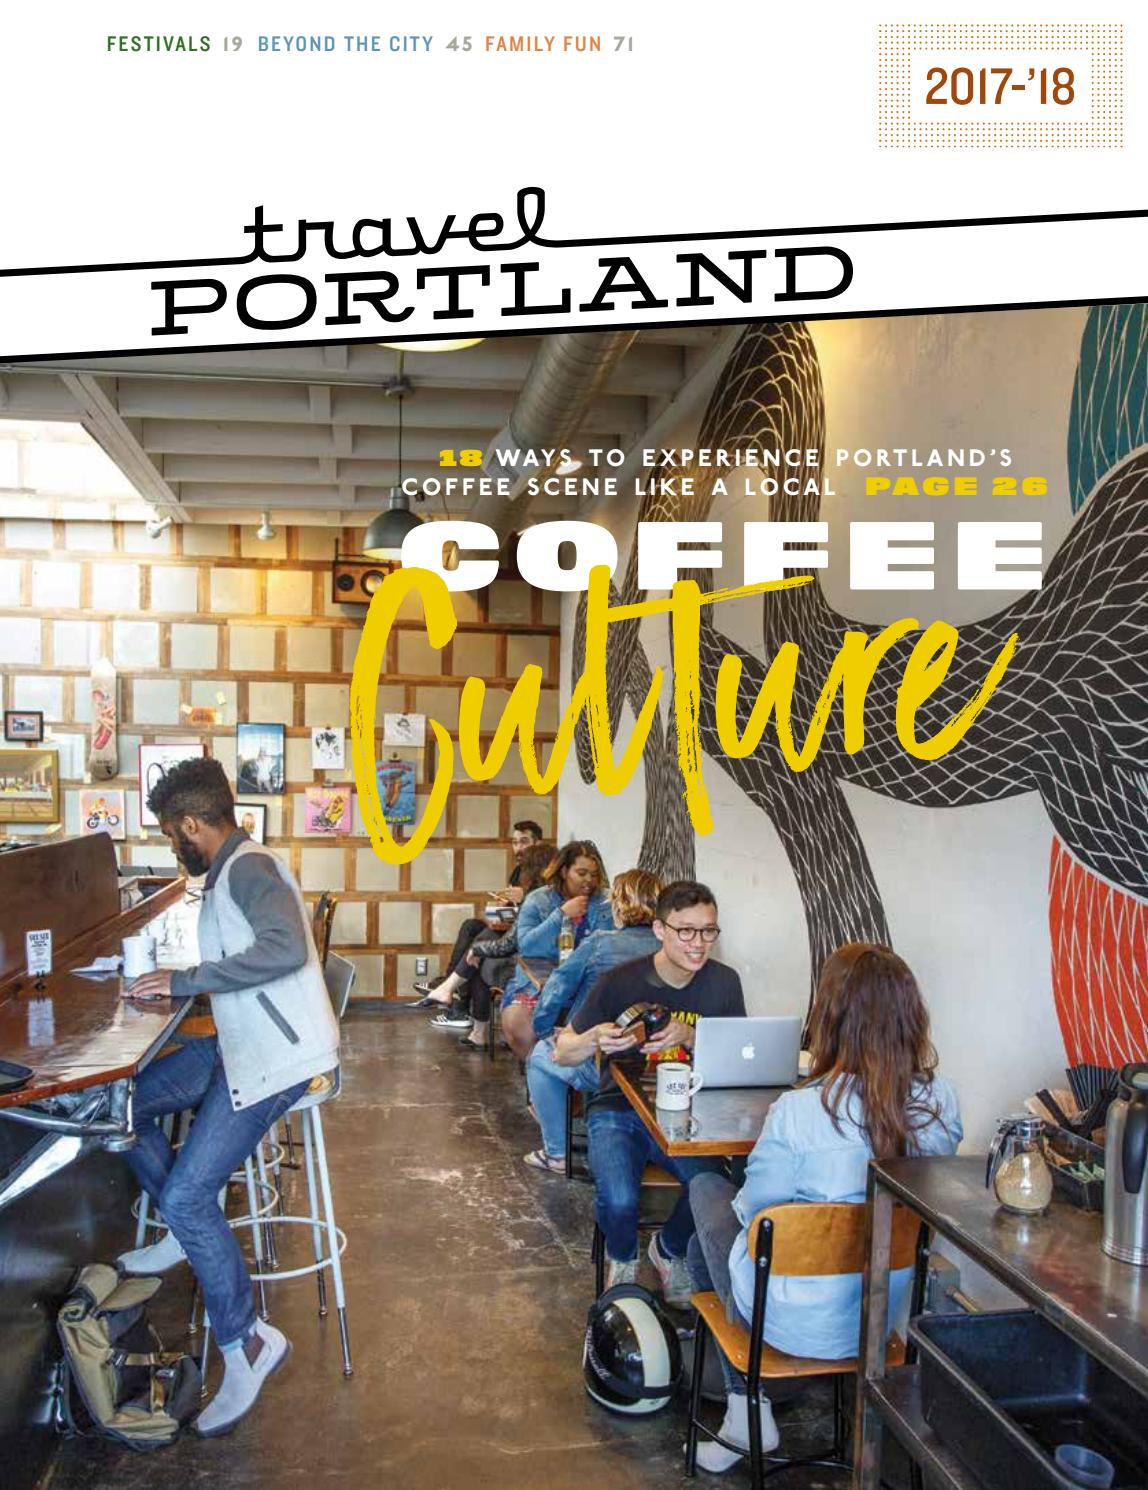 59ea3628b6 Travel Portland Visitors Guide 2017- 18 by Travel Portland - issuu